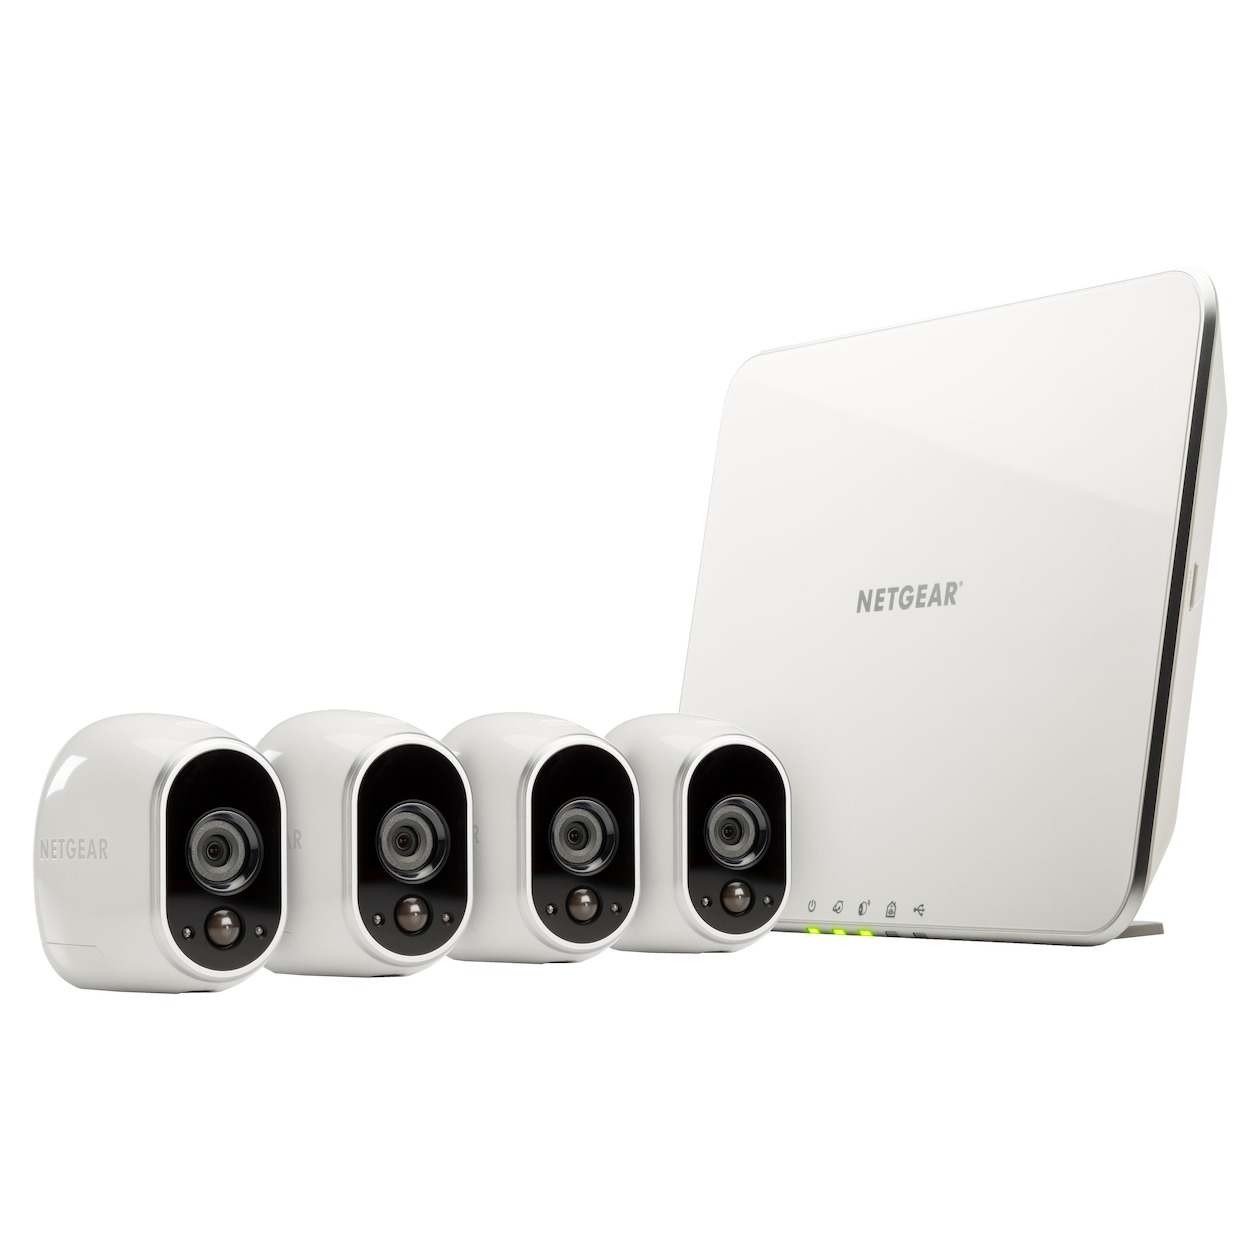 Netgear ip camera Arlo Smart Home HD Camera Four Pack wit